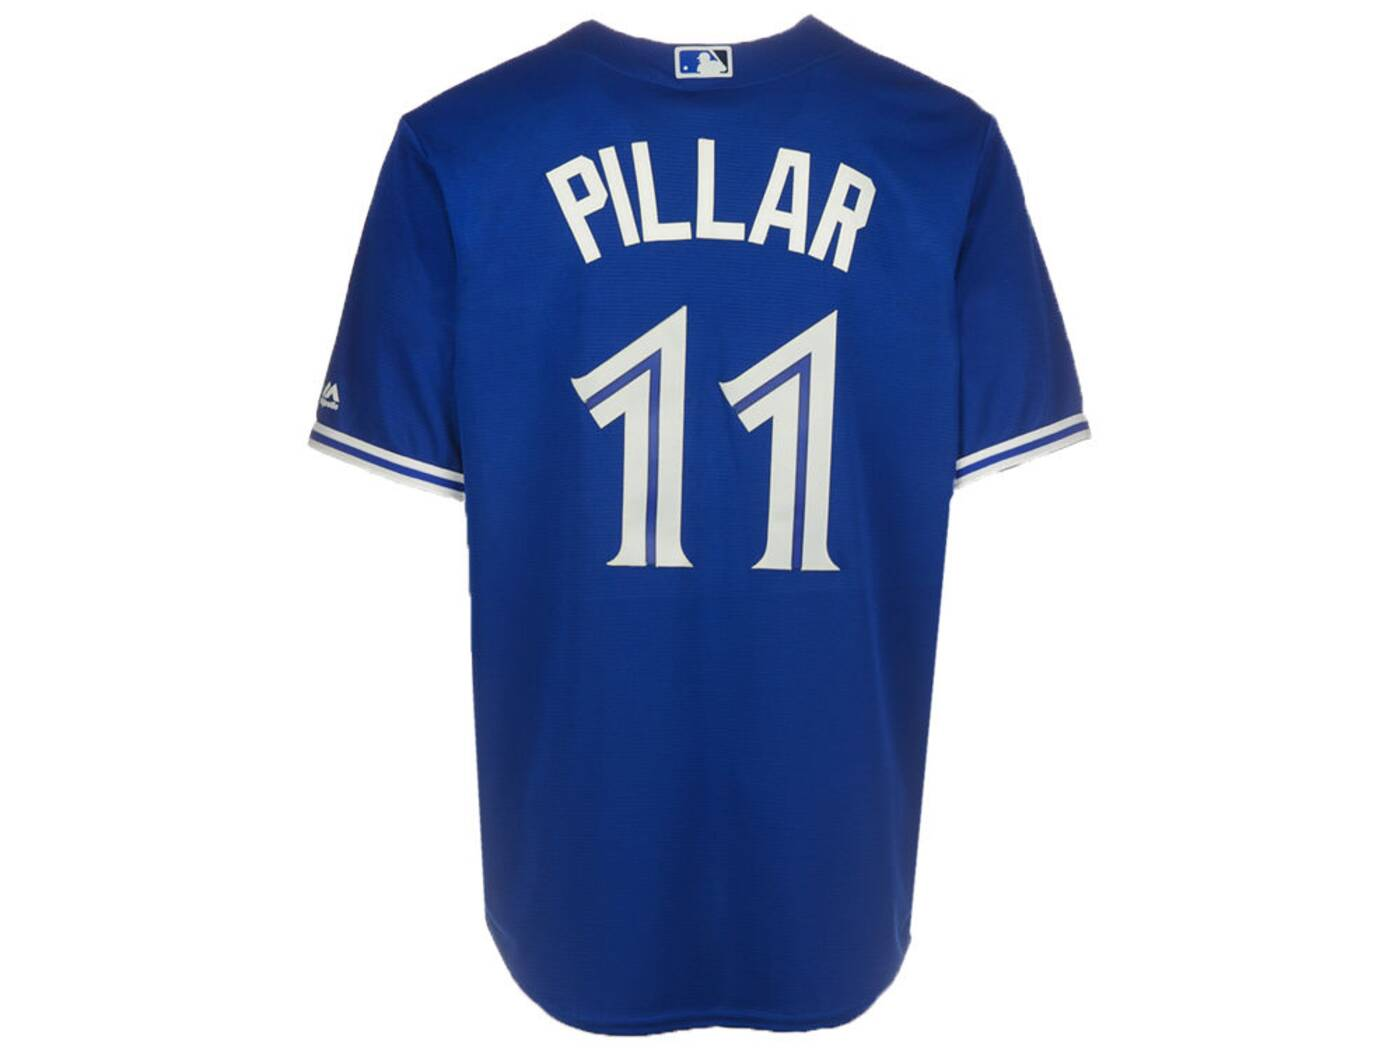 hot sale online 768a4 235bf 10 stores to buy Blue Jays clothing in Toronto